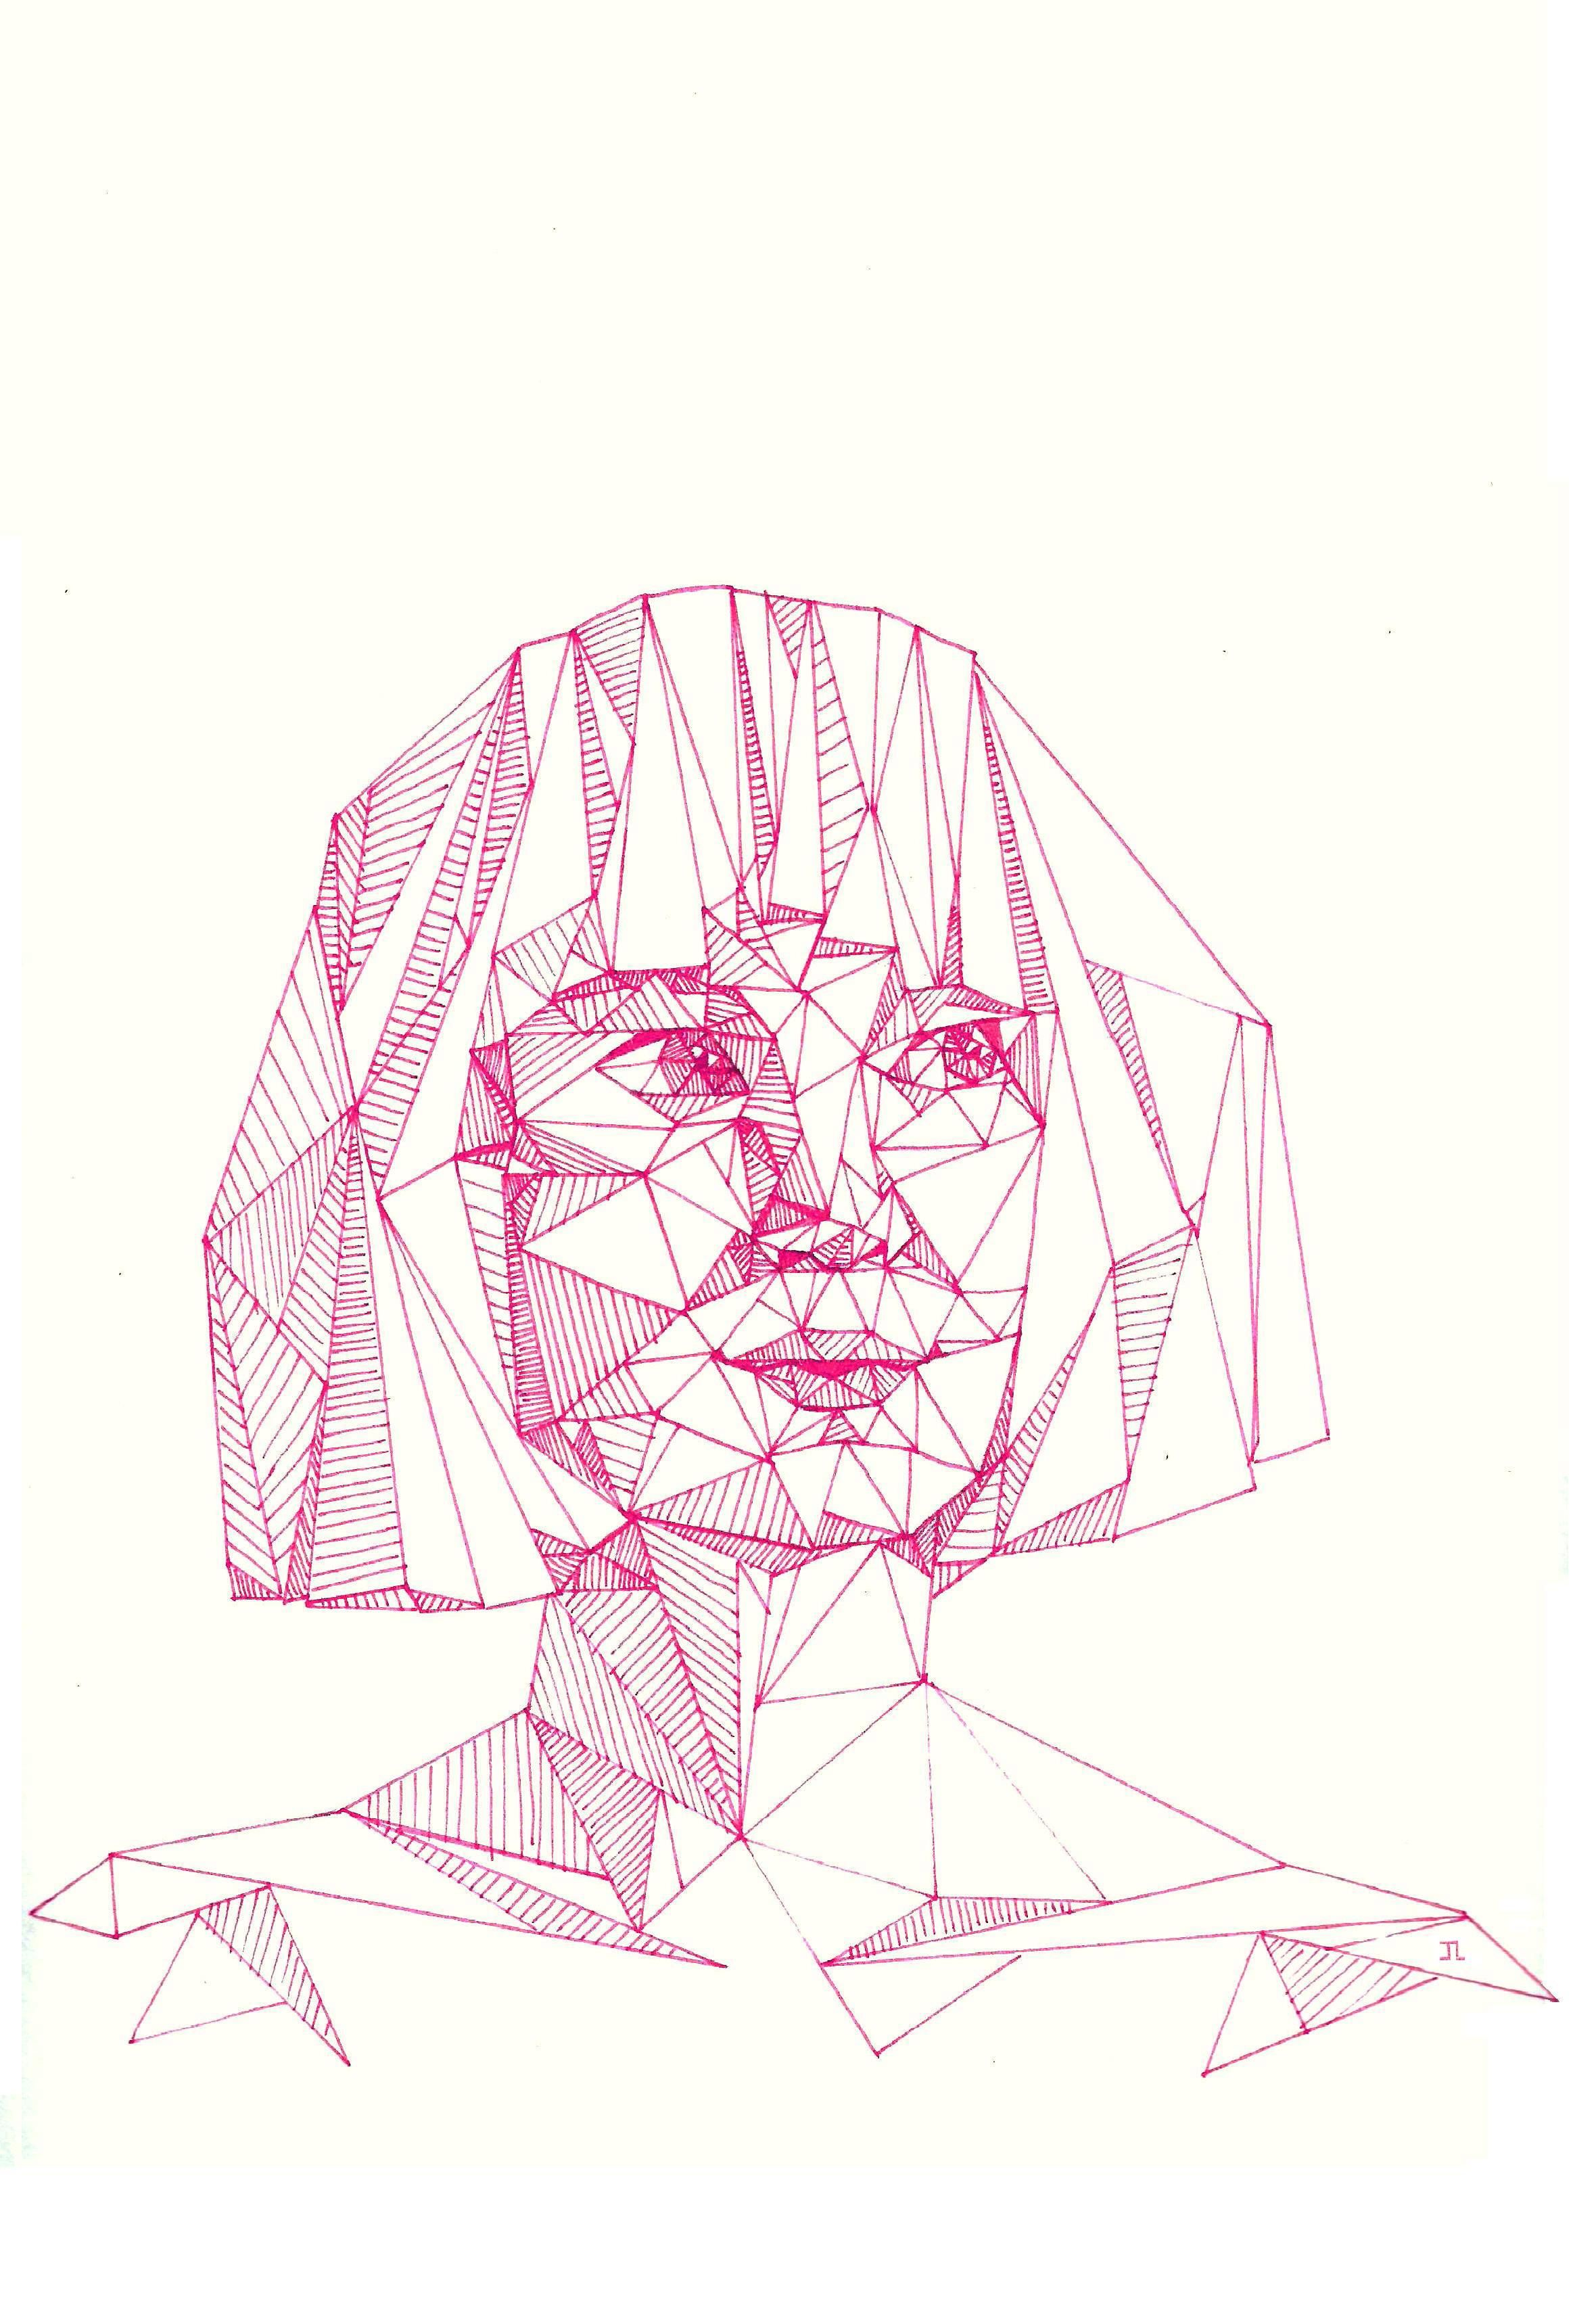 Geometric sia singer of titanium and song writer for beyonce singer of titanium and song writer for beyonce rihanna and so many more musical artists has inspired this illustration with her new single chandelier arubaitofo Image collections